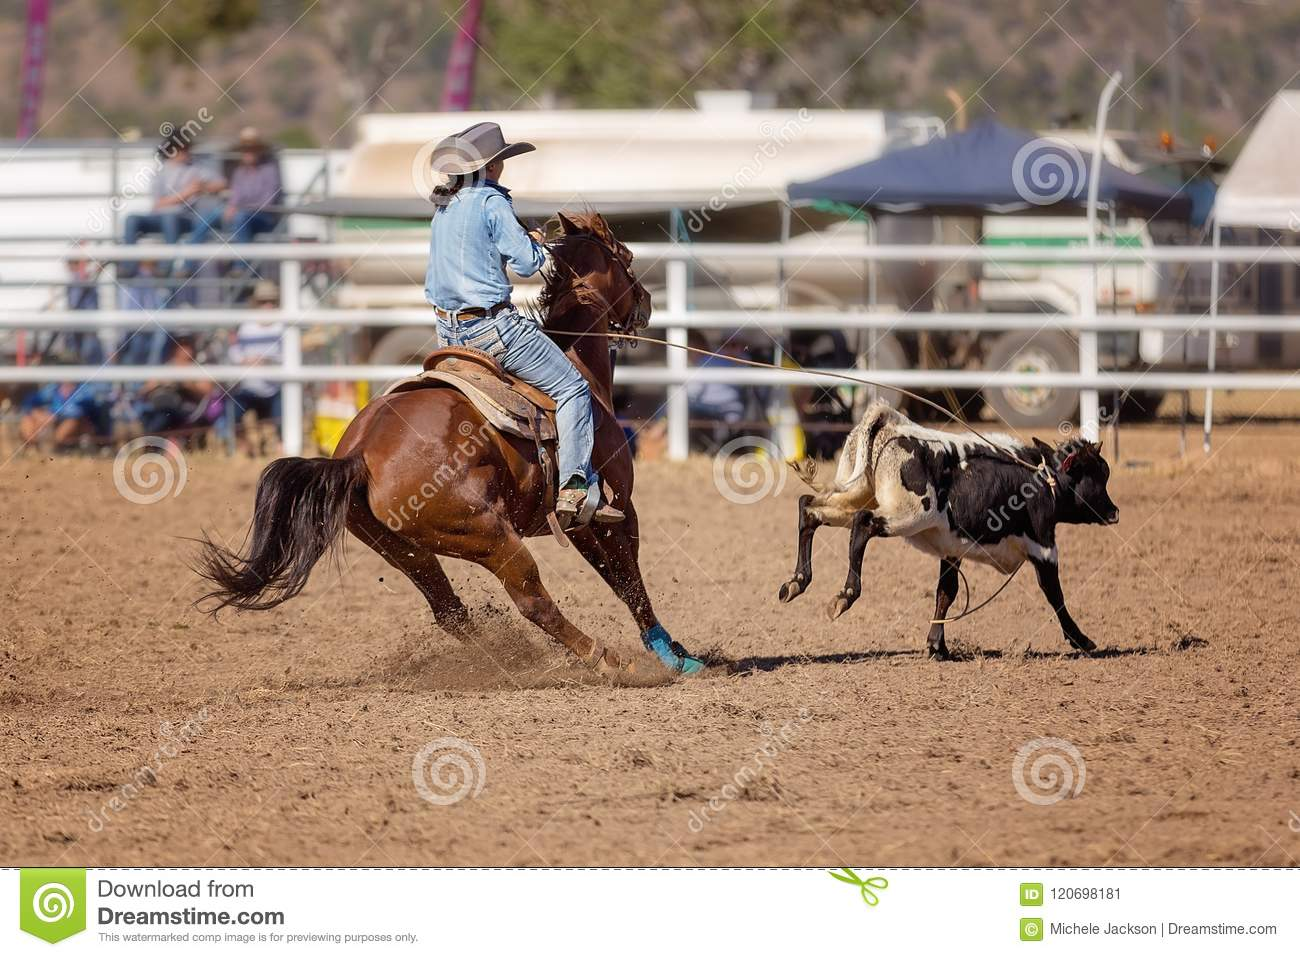 f2b631662aaa7 Cowgirl Competing In A Calf Roping Event At A Country Rodeo ...